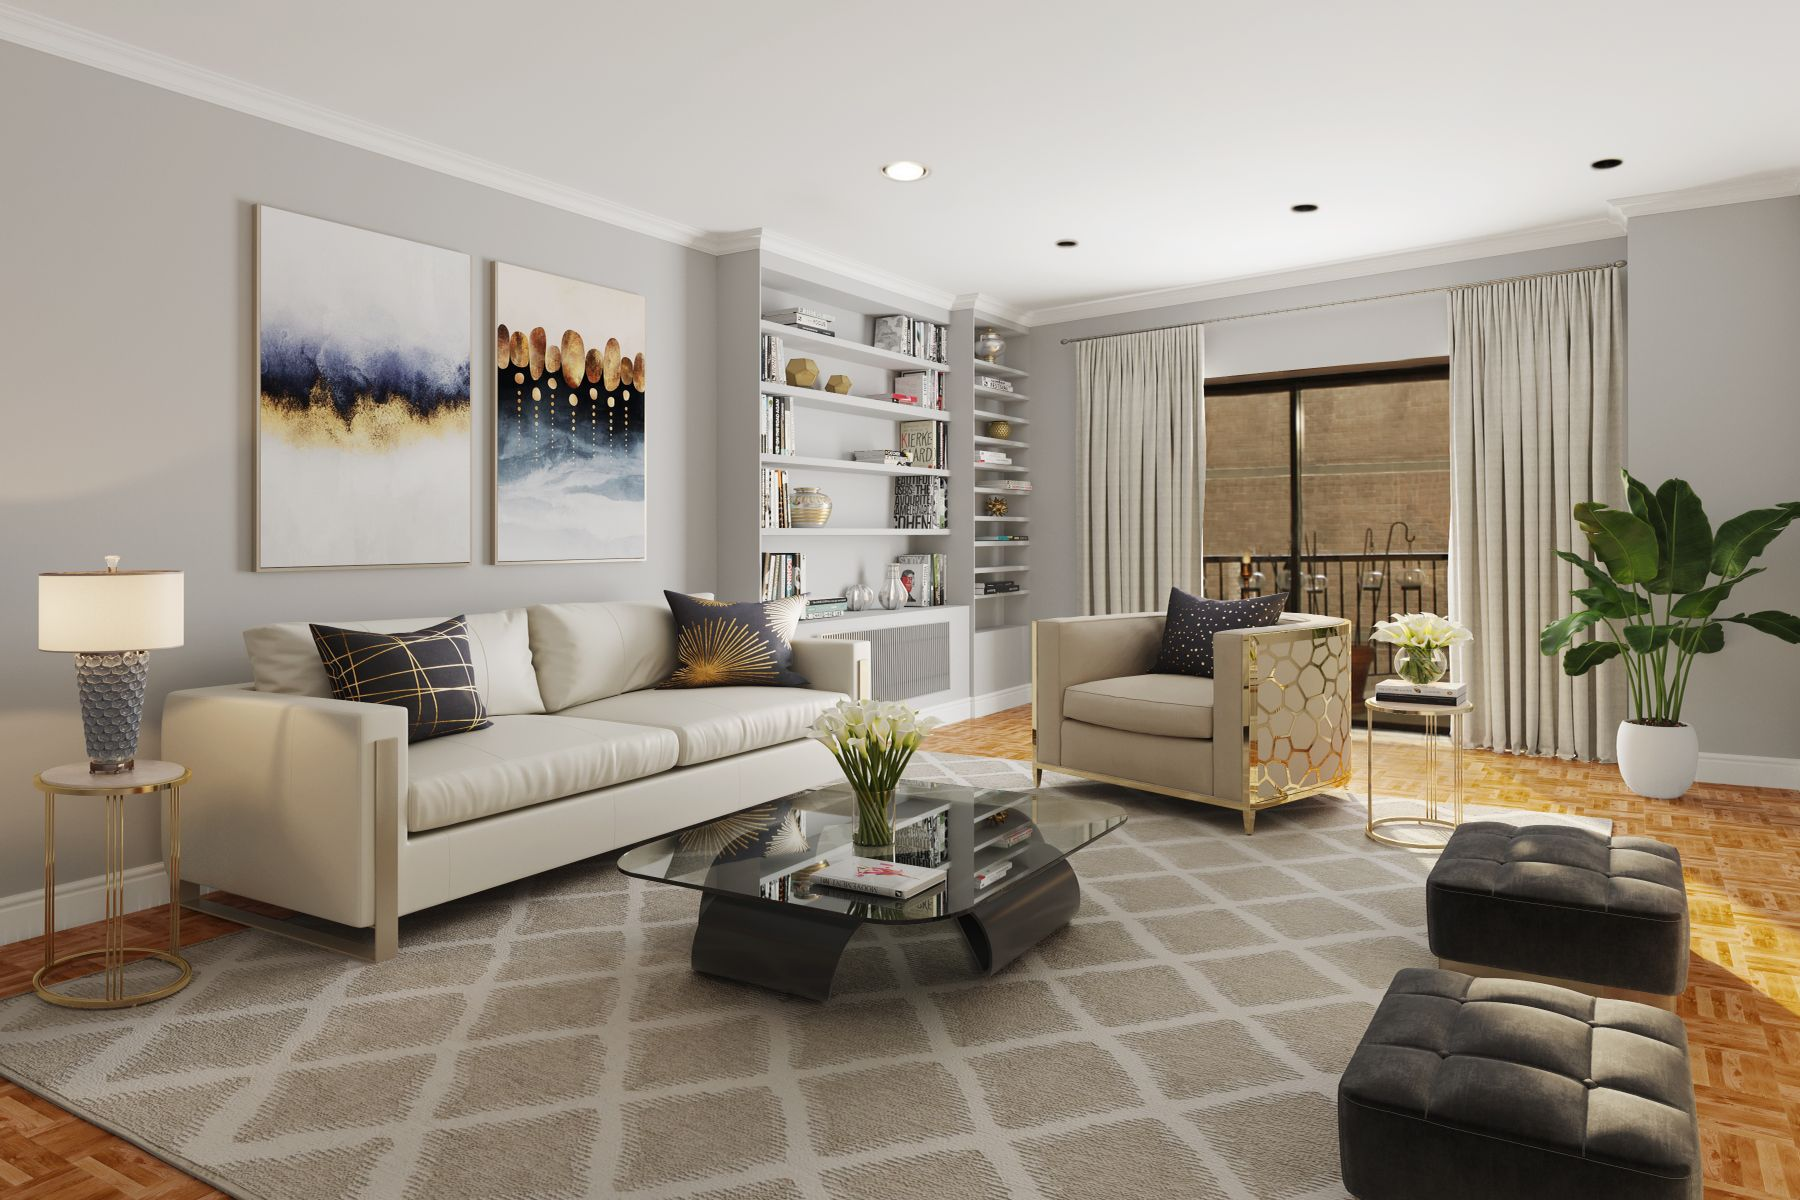 Condominium for Sale at 22 East 82nd Street, 3 22 East 82nd Street 3 New York, New York 10028 United States